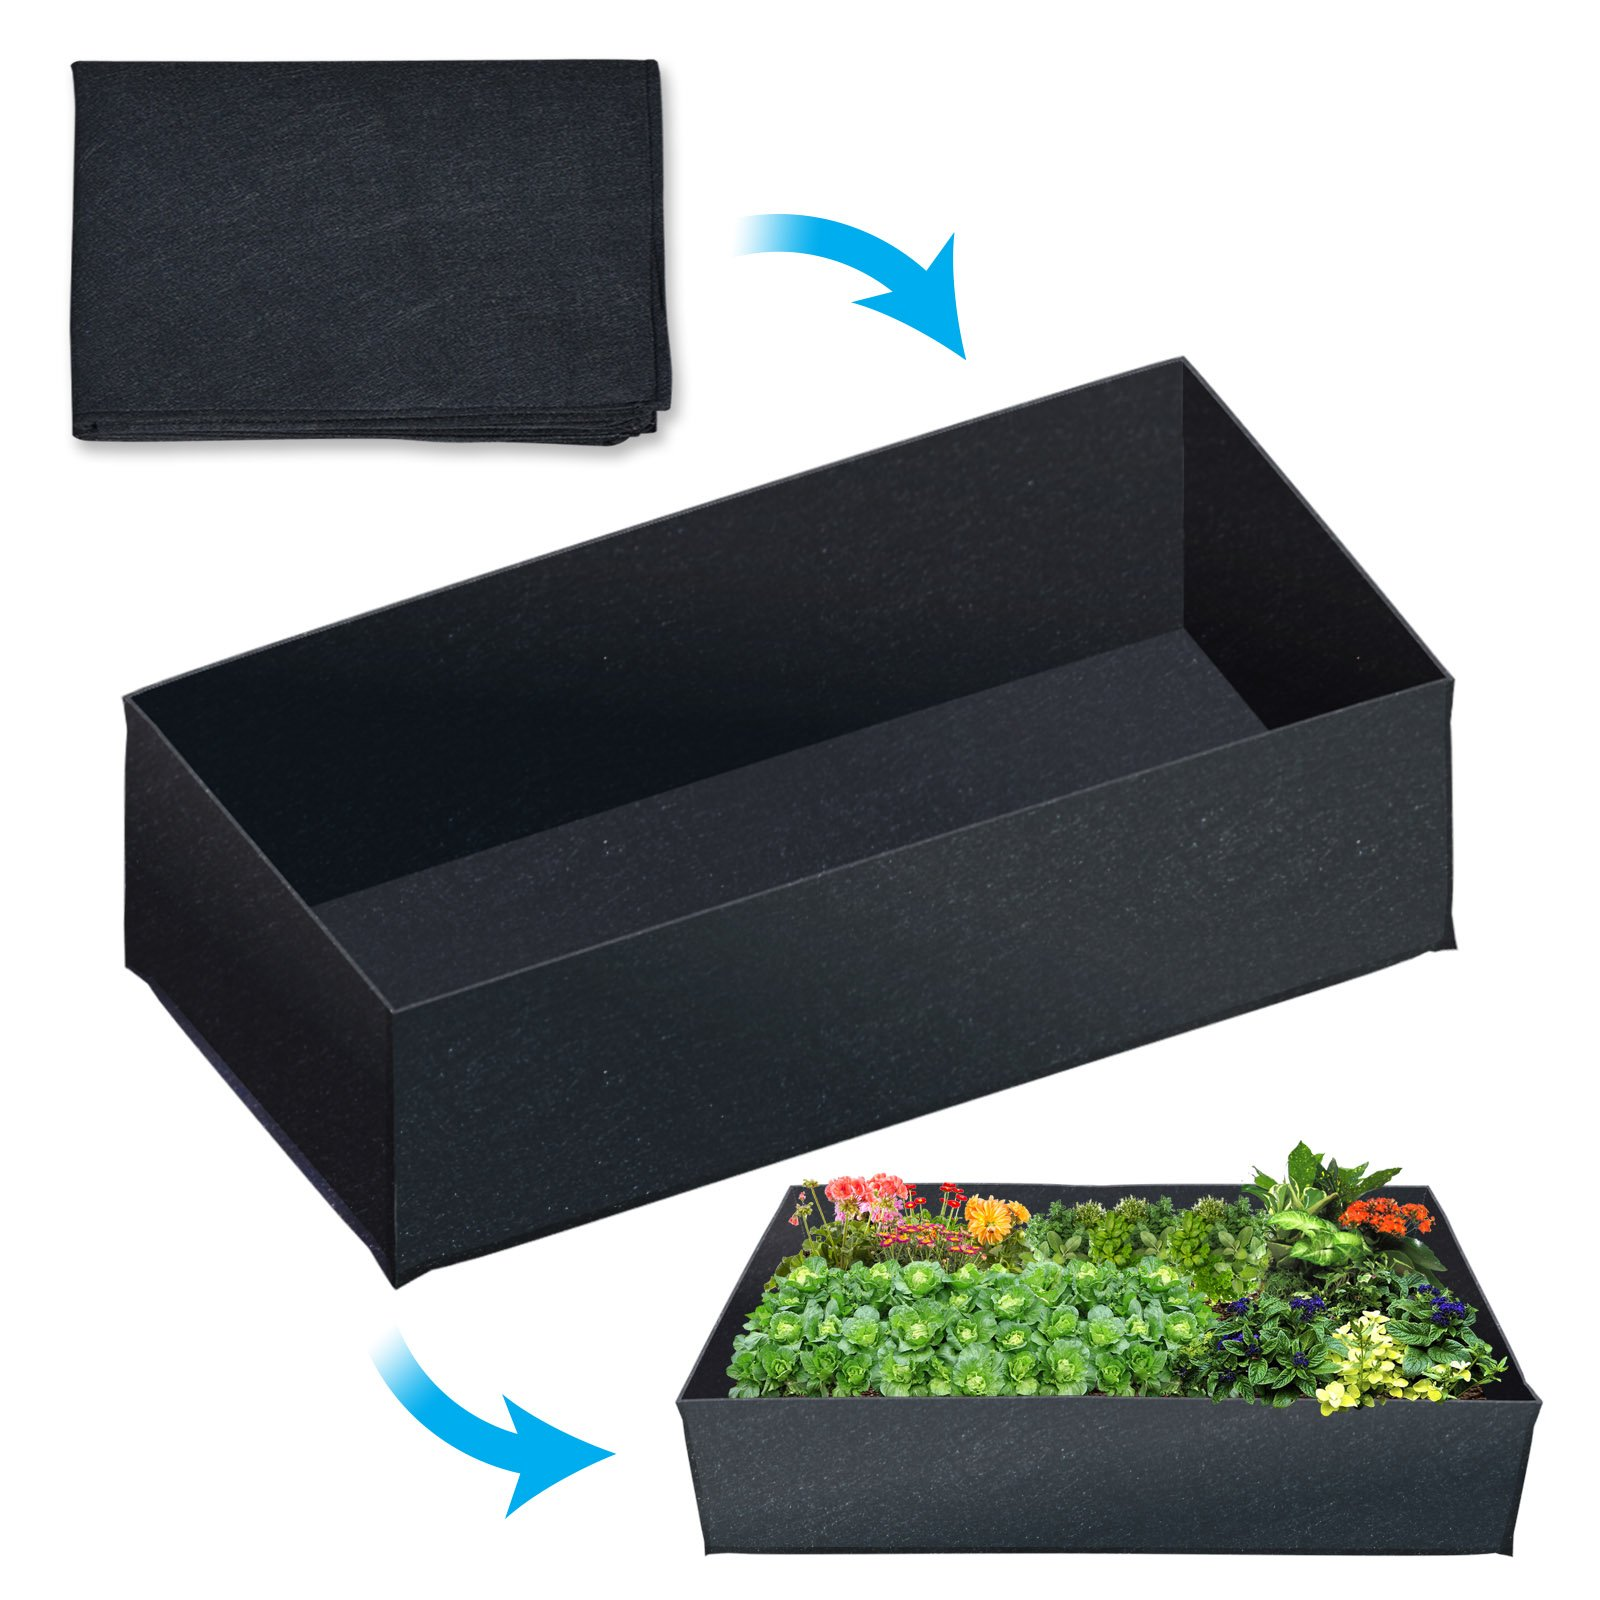 BenefitUSA Fabric Raised Planting Bed Garden Grow Bags Herb Flower Vegetable Plants Bed Rectangle Planter (24''x 48'') by BenefitUSA